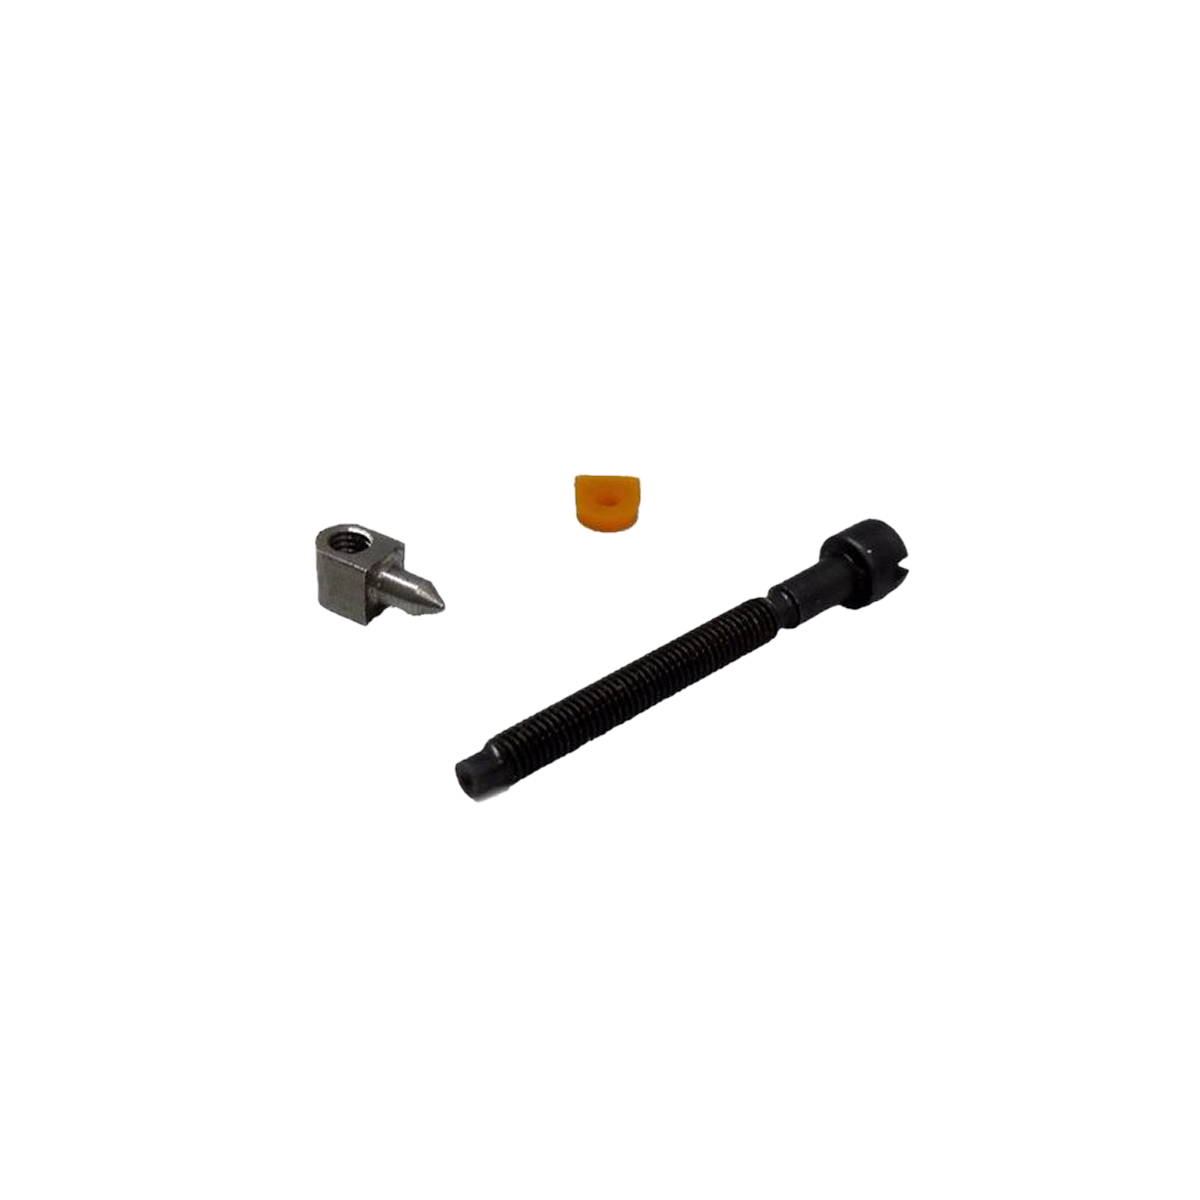 Husqvarna 537106501 Chain Saw Chain Tensioner Kit